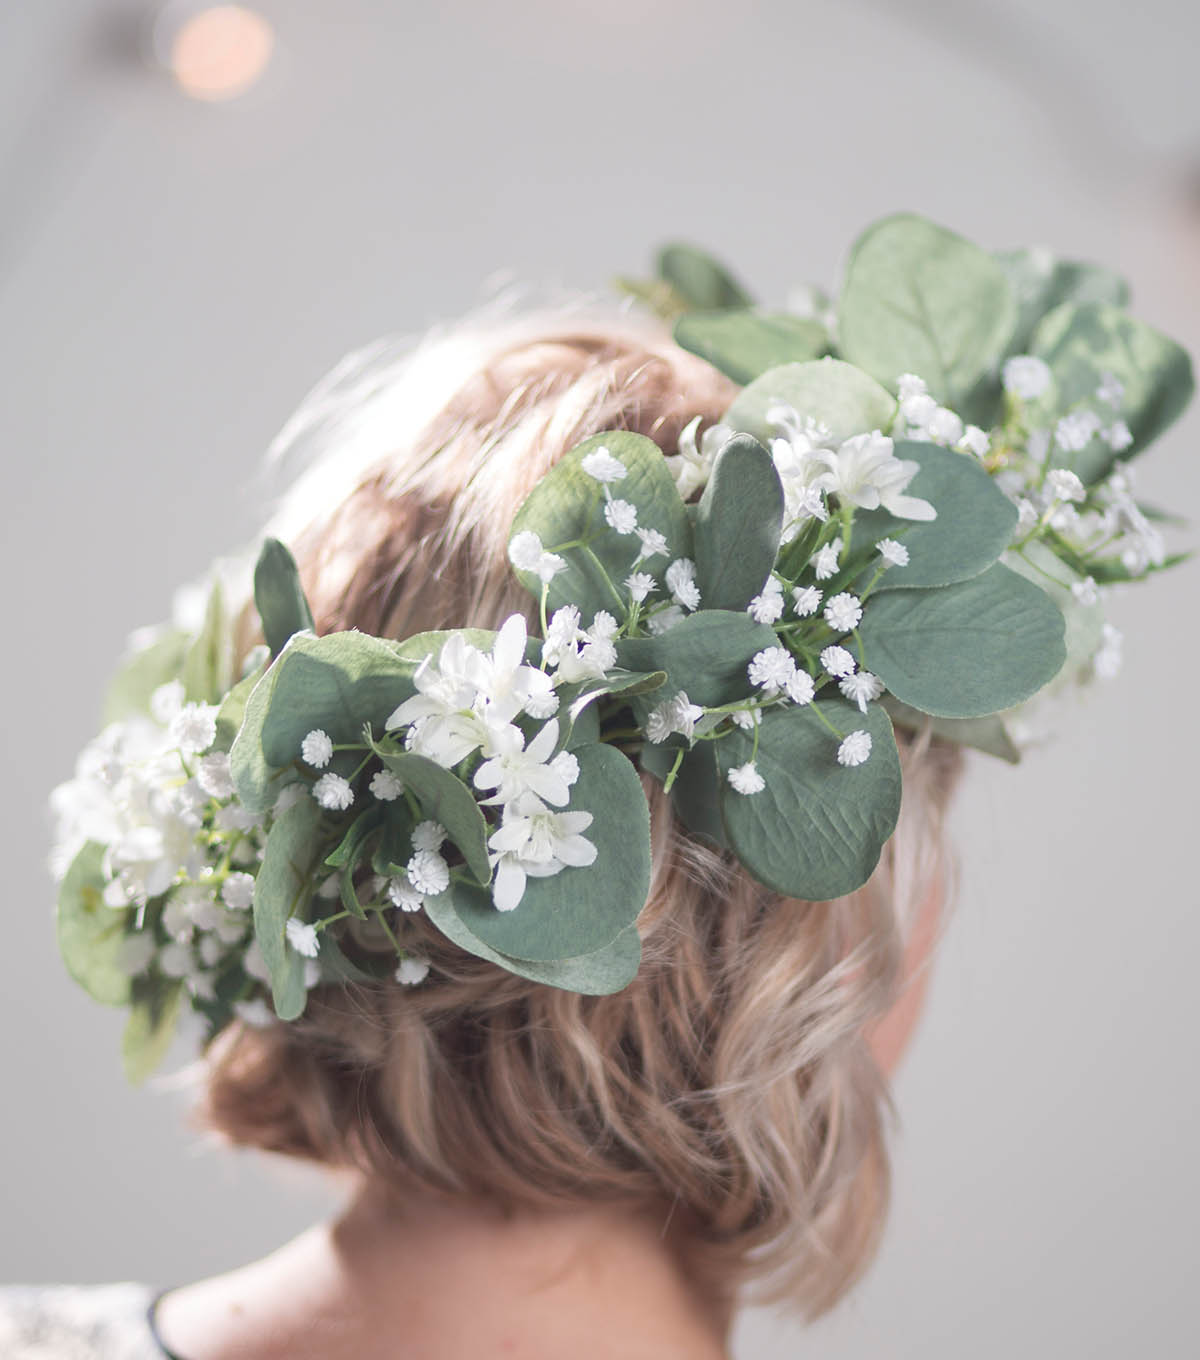 How To Make An Eucalyptus White Flower Garland Crown Joann